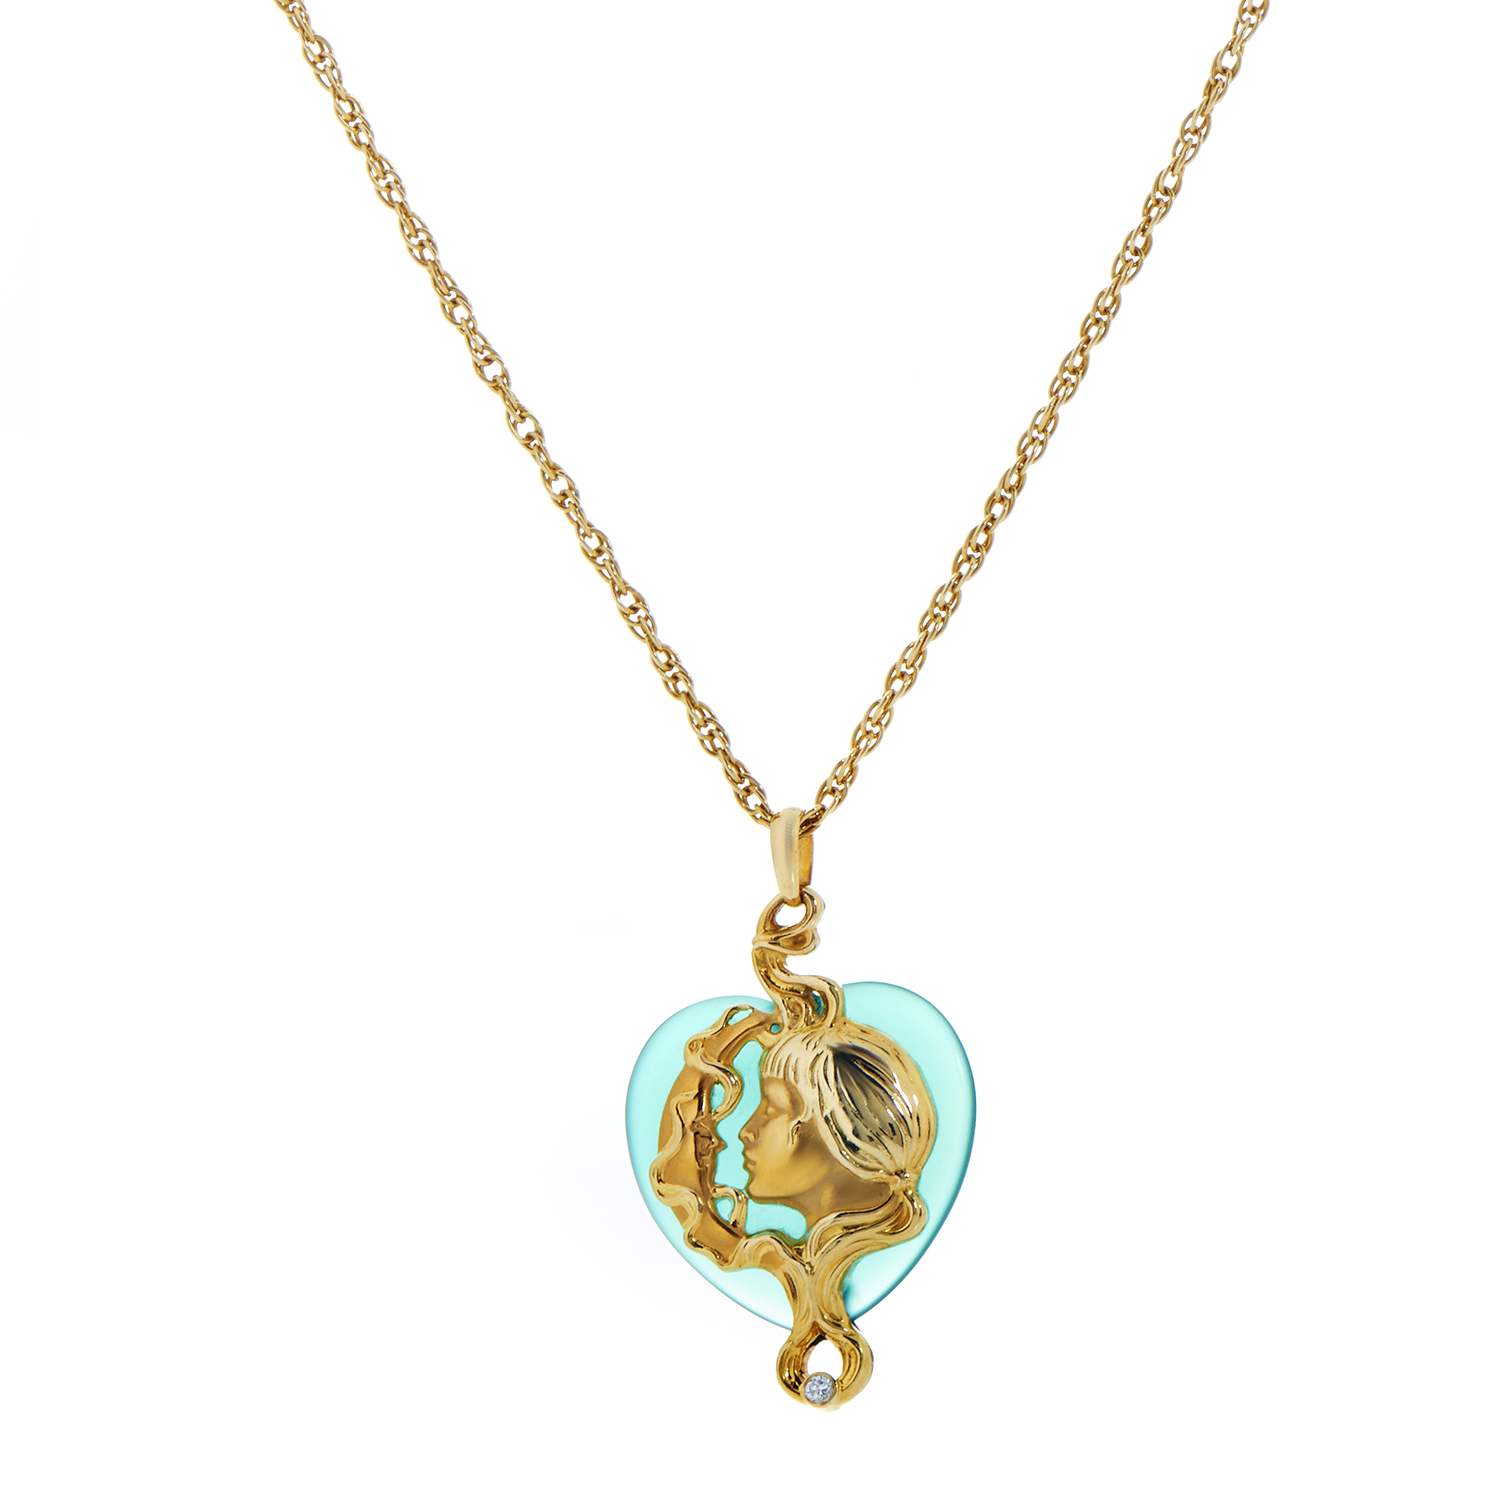 Carrera y Carrera Women's 18K Yellow Gold Green Agate Heart Pendant Necklace